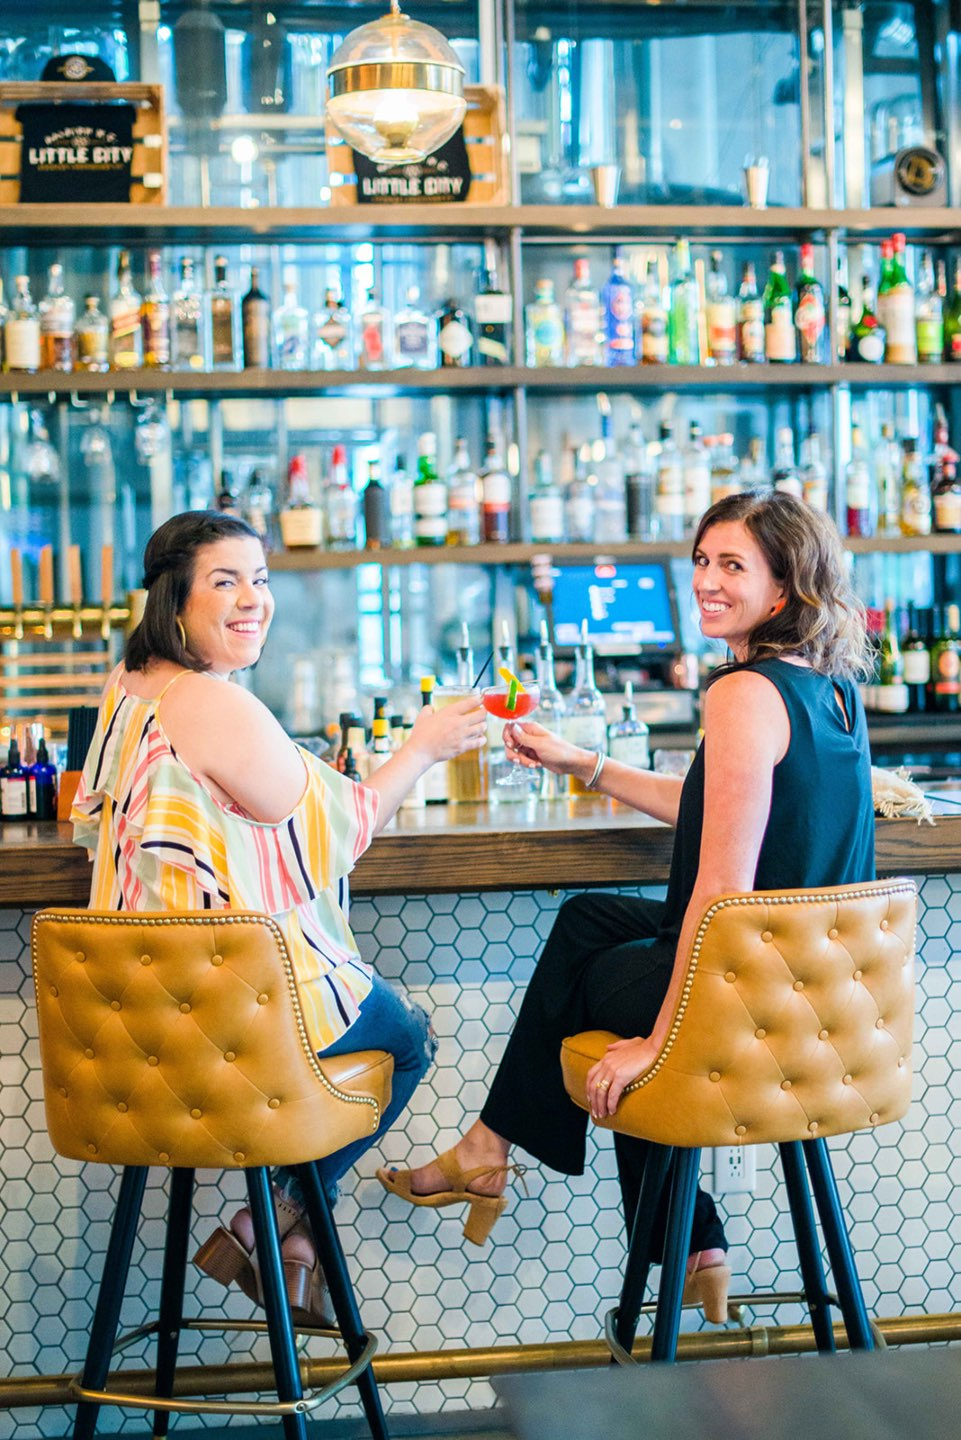 Raleigh Favorite: Little City Brewing + Provisions Company - I'm Fixin' To - @mbg0112